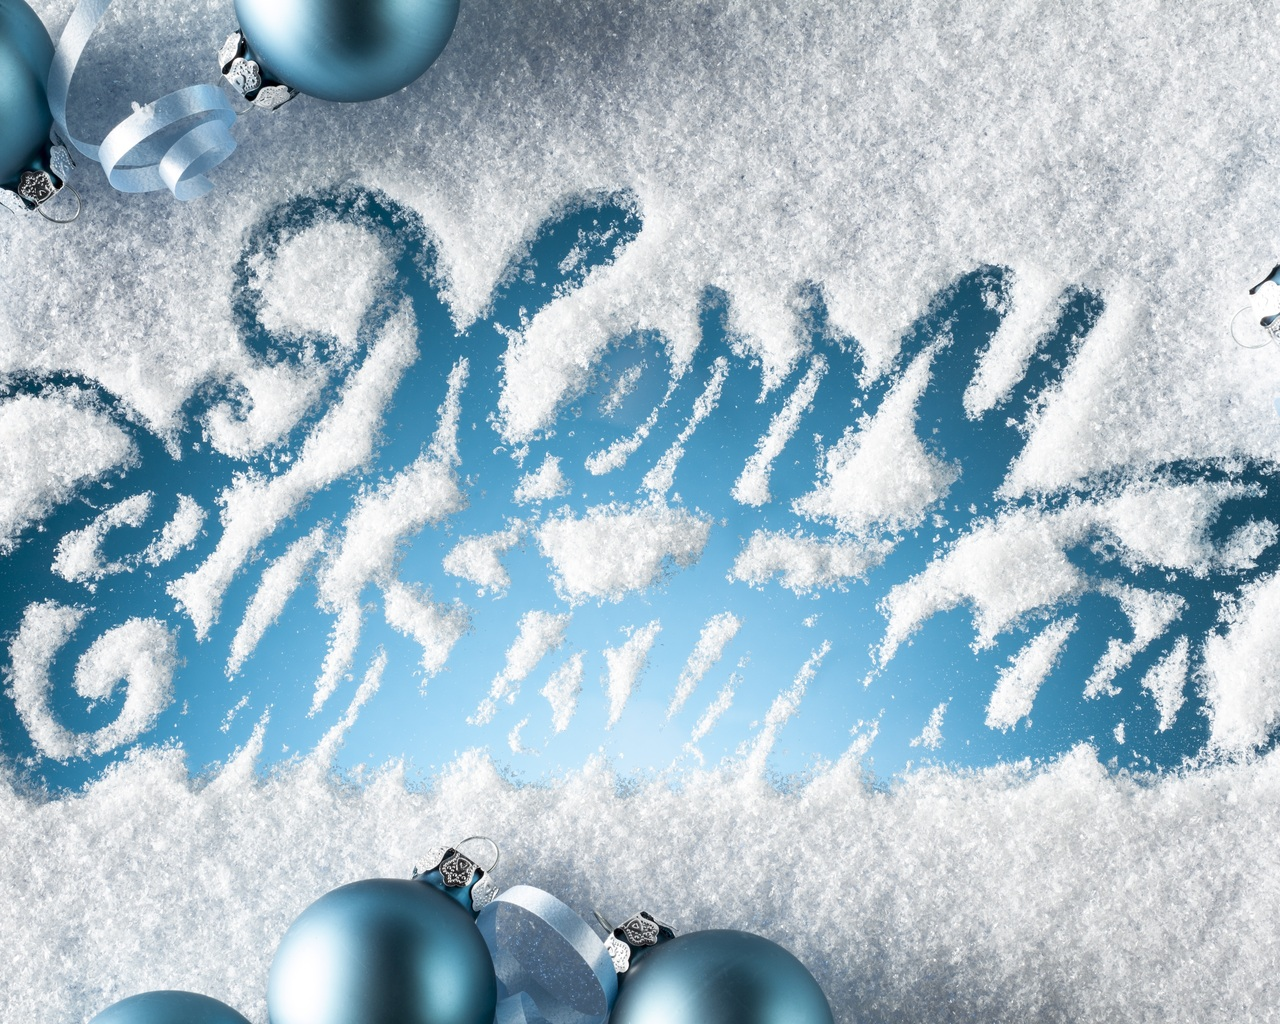 Merry Christmas Written in the Snow